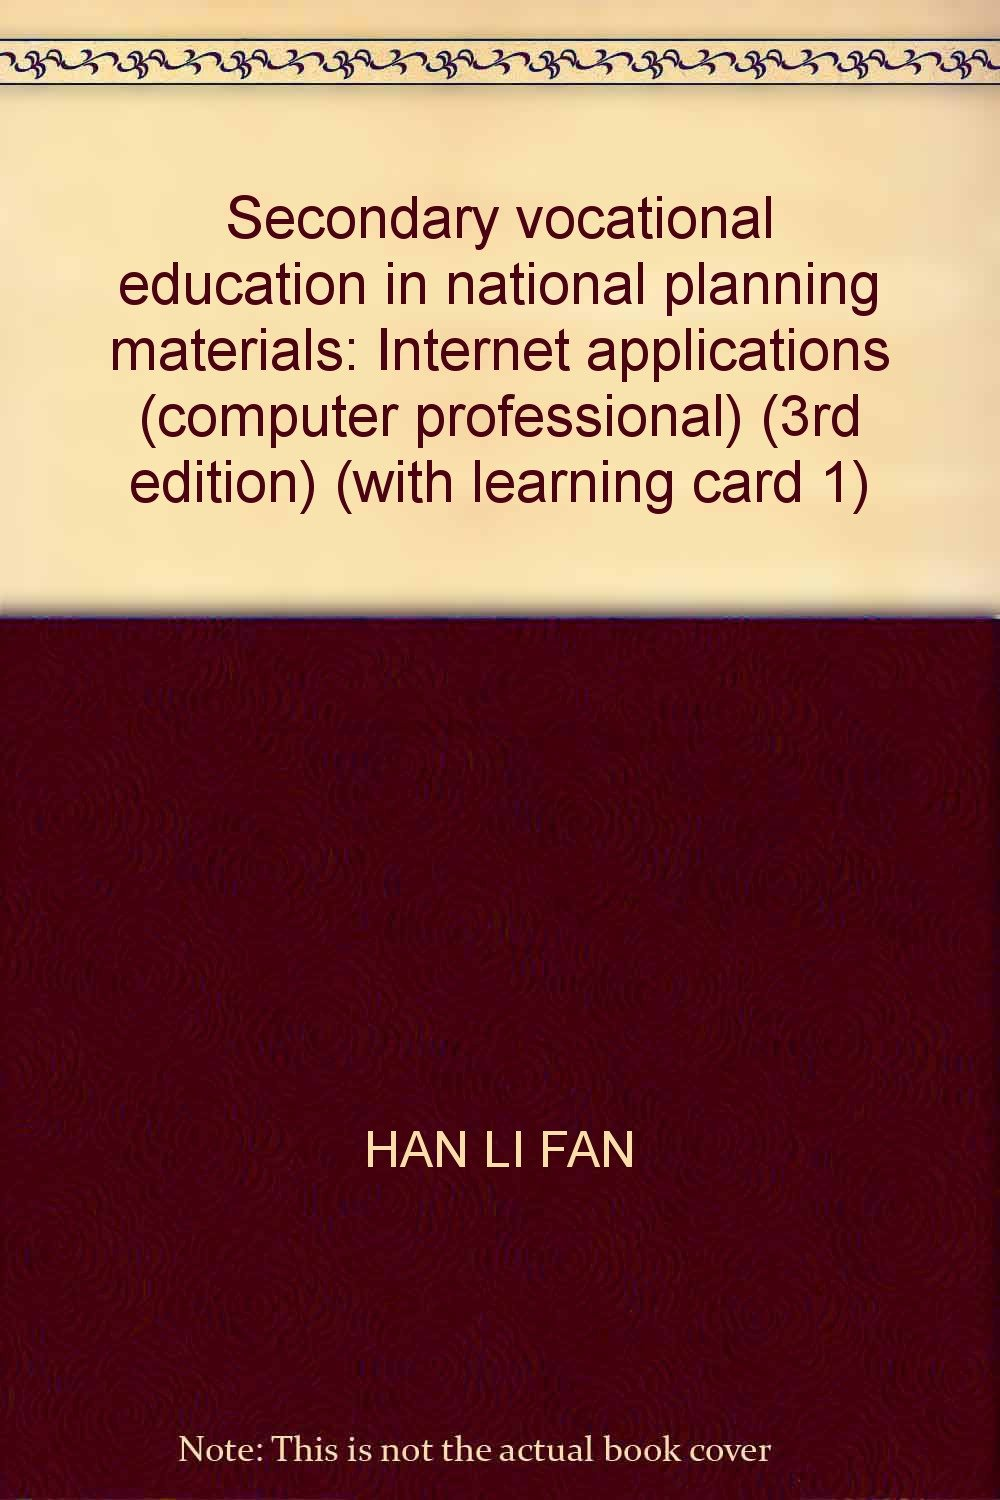 Read Online Secondary vocational education in national planning materials: Internet applications (computer professional) (3rd edition) (with learning card 1) ebook